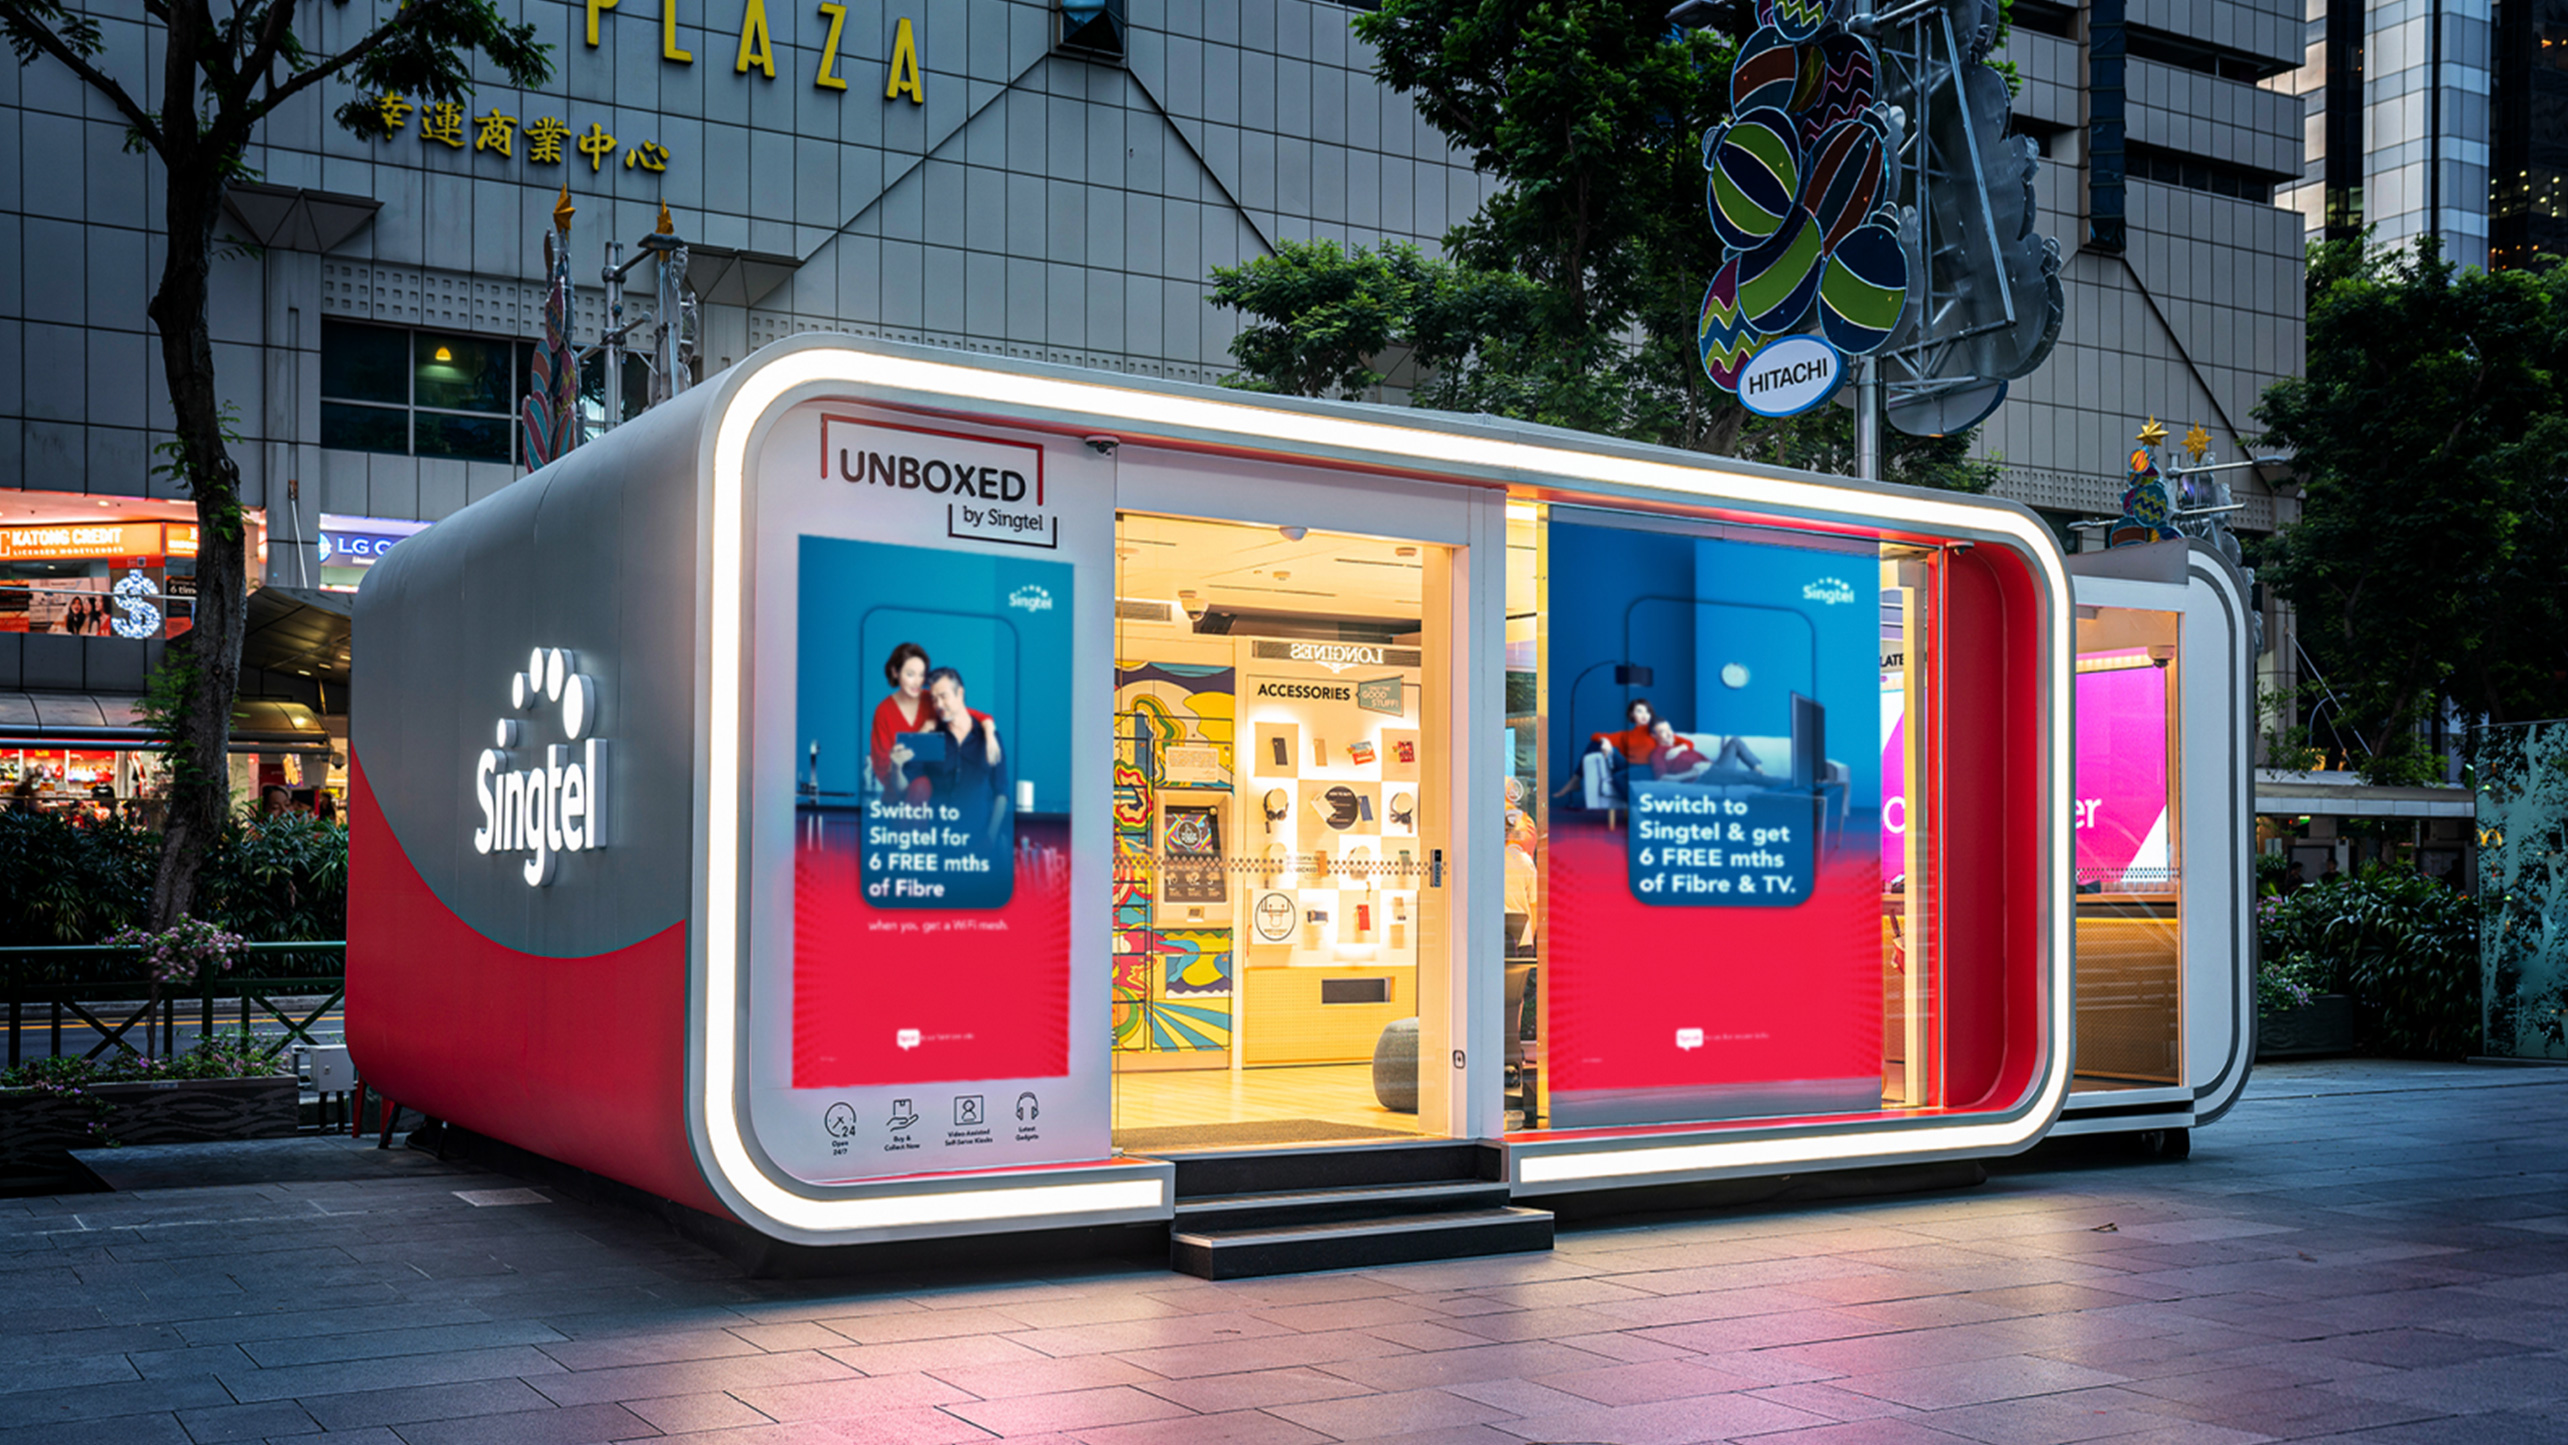 The future of retail formats: pop-ups, pick-ups and unmanned stores | WPP